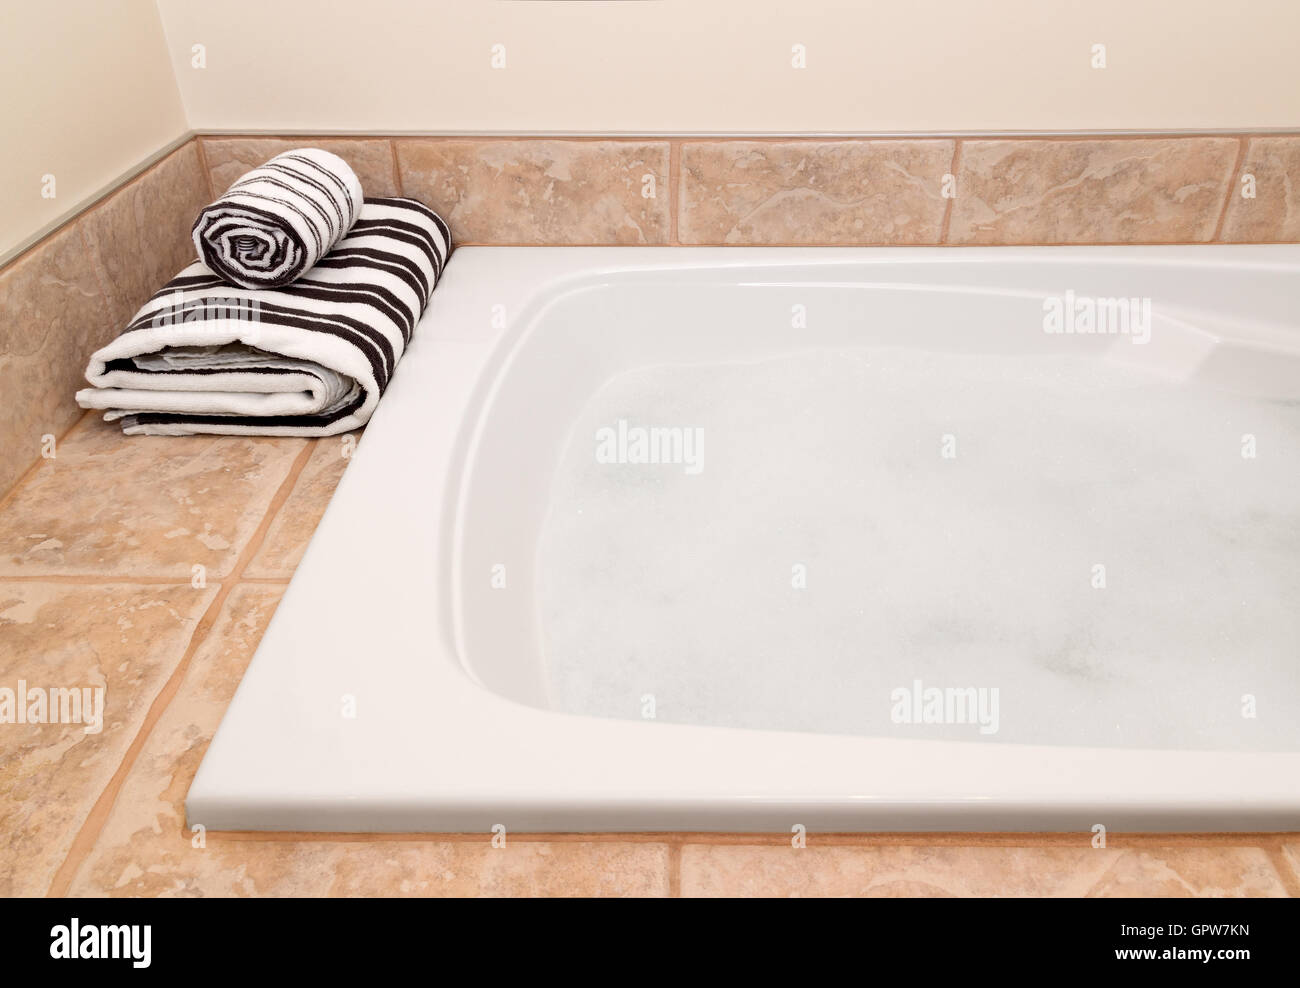 Bath Towels Lifestyle Stock Photos & Bath Towels Lifestyle Stock ...